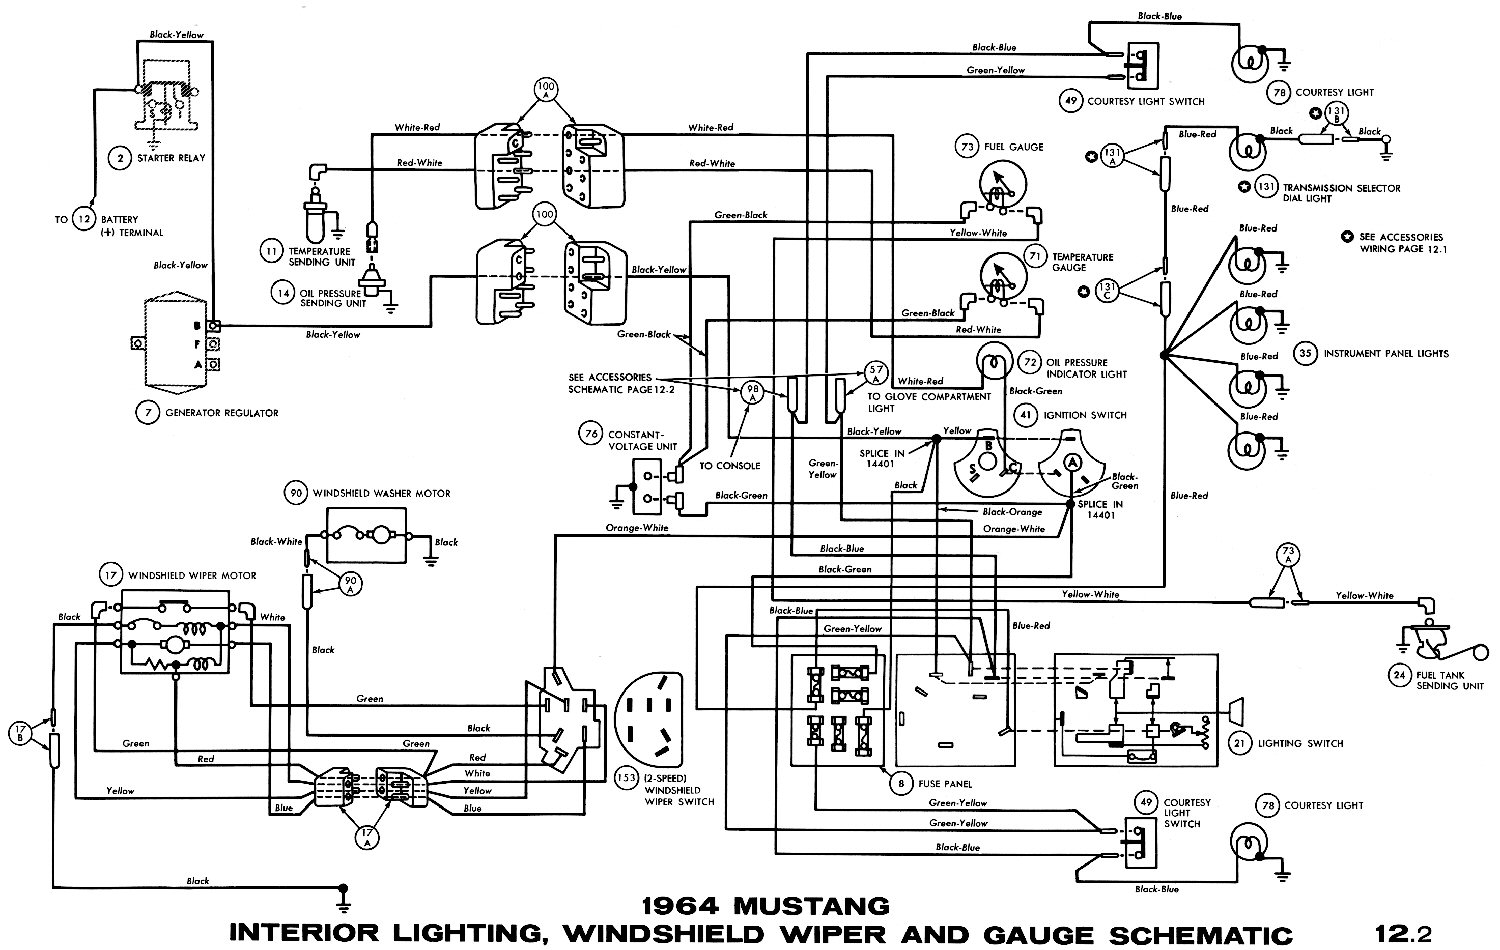 2000 Gmc Sierra Wiring Diagram moreover 2002 Ford F350 7 3 Fuse Box Diagram also E40d Wiring Harness Diagram also 3 furthermore F250 Fuse Box Location. on ford f250 stereo wiring diagram